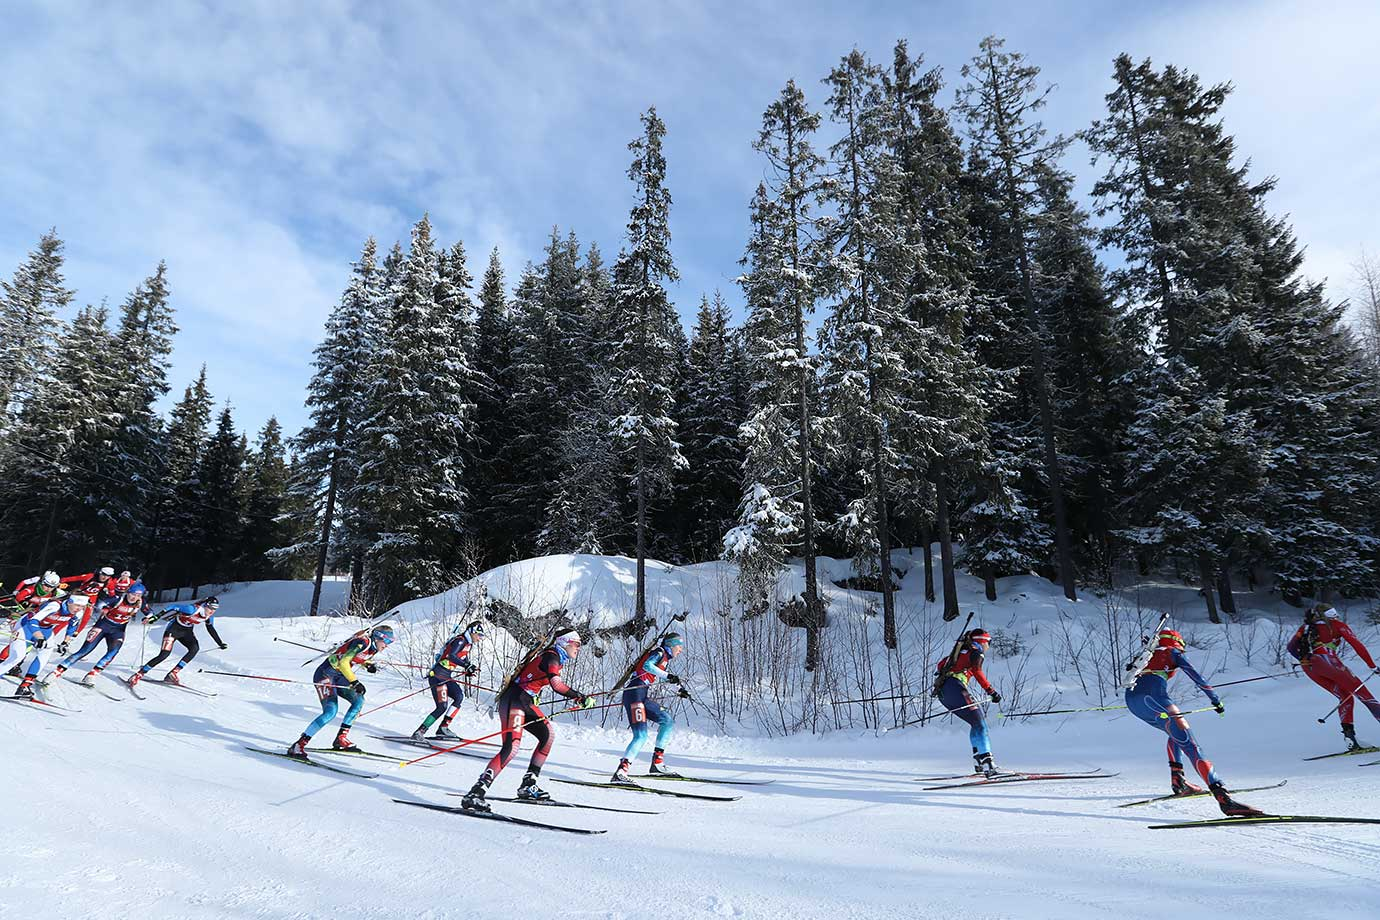 A mass start for the Women in the Biathlon Mixed Relay at Birkebeineren Biathlon Stadium on Feb. 21, 2016 during the Winter Youth Olympic Games in Lillehammer, Norway.